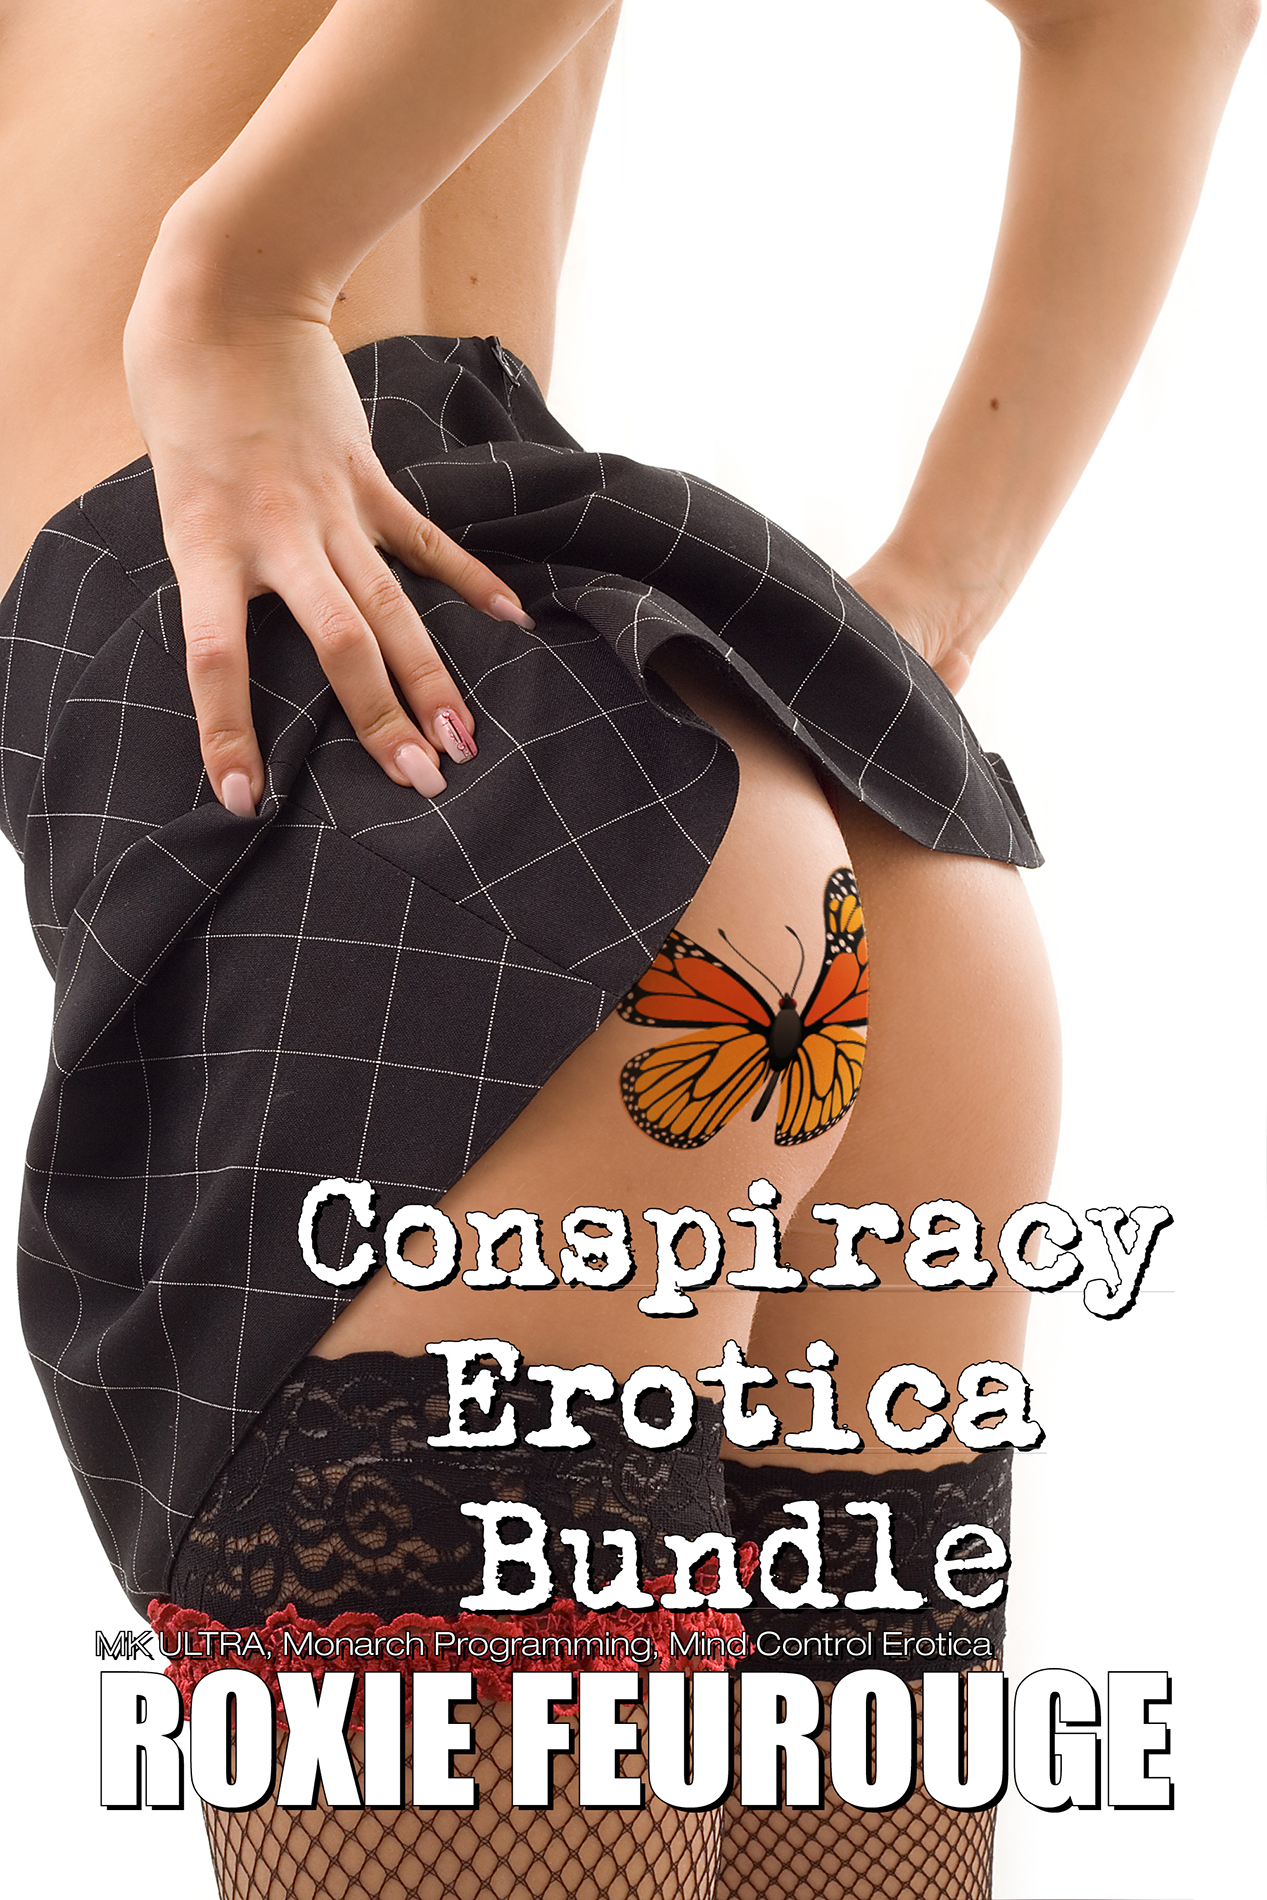 Conspiracy Erotica Bundle (MK ULTRA, Monarch Programming, Mind Control Erotica)